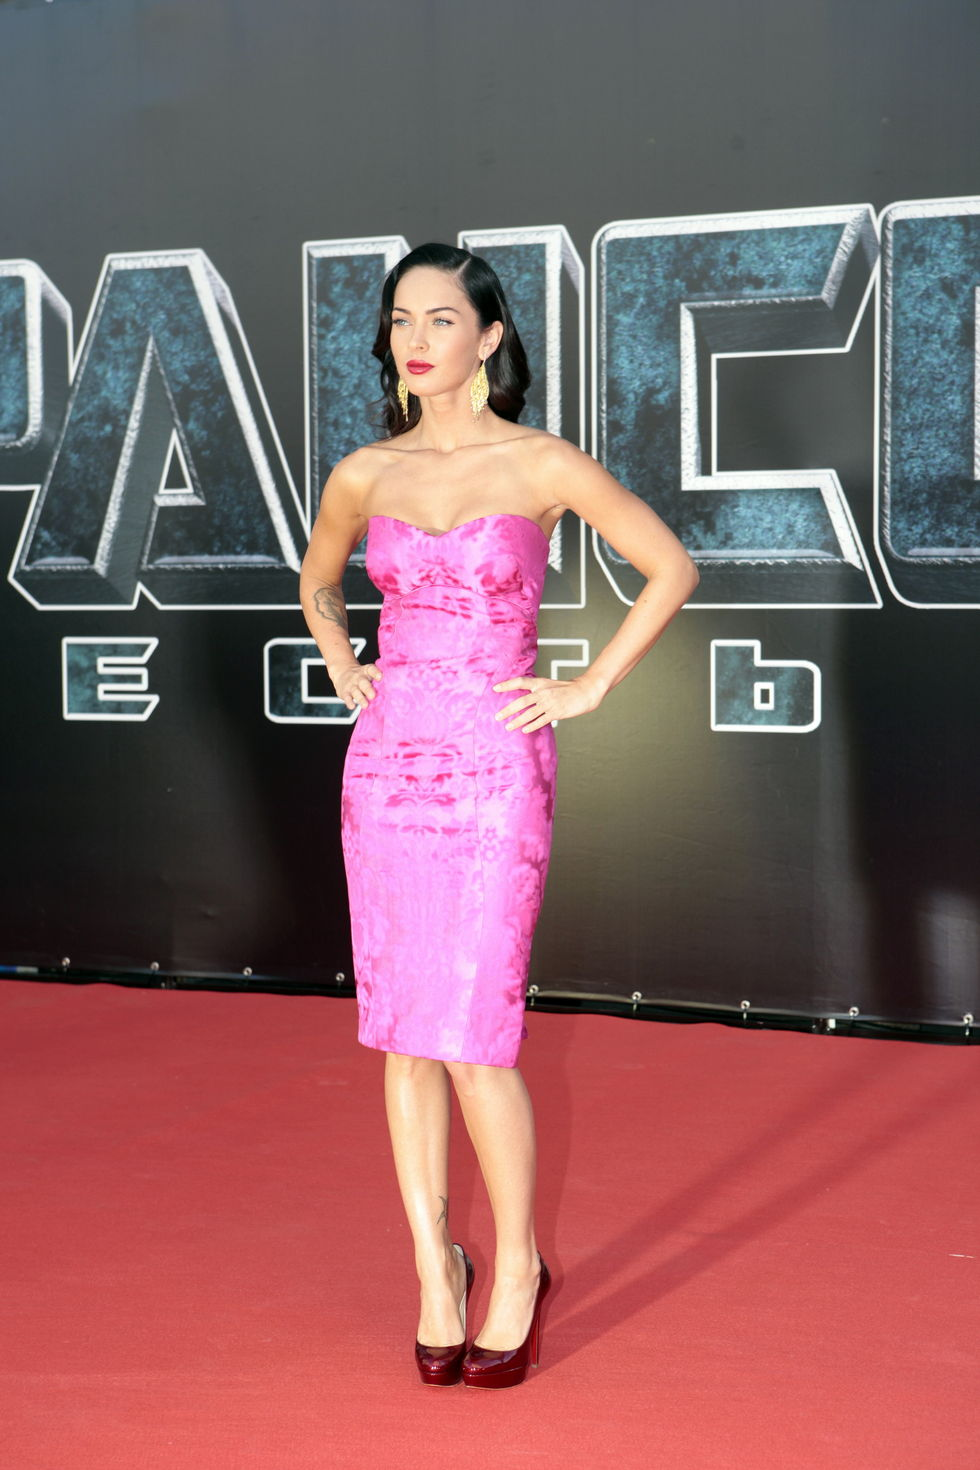 megan-fox-transformers-revenge-of-the-fallen-premiere-in-moscow-01